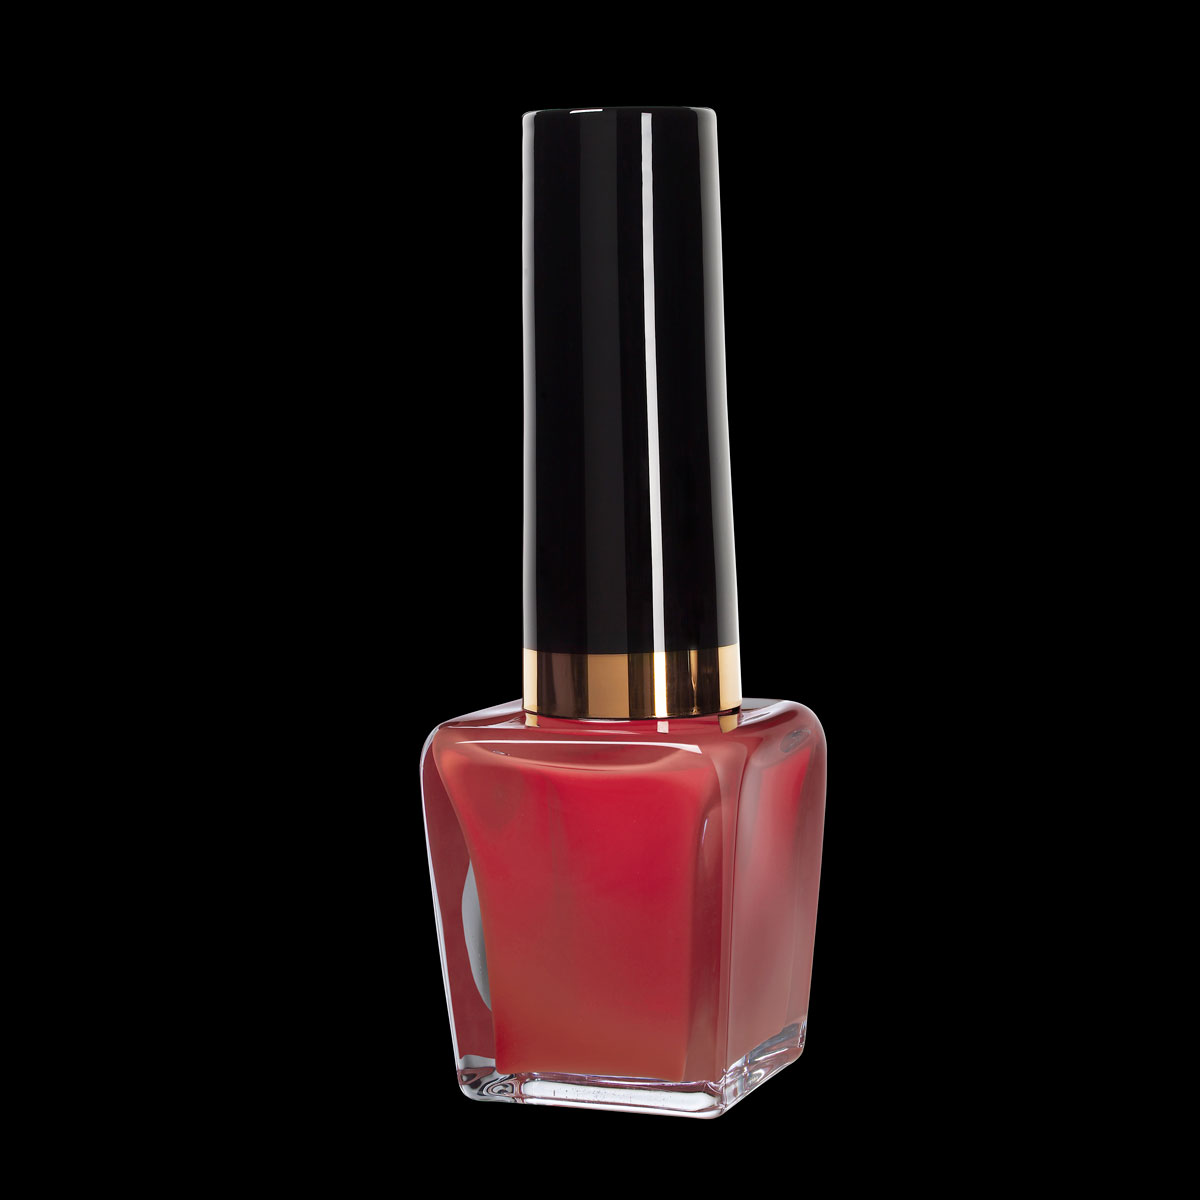 Kosta Boda Art Glass Make Up, Nail Polish Red